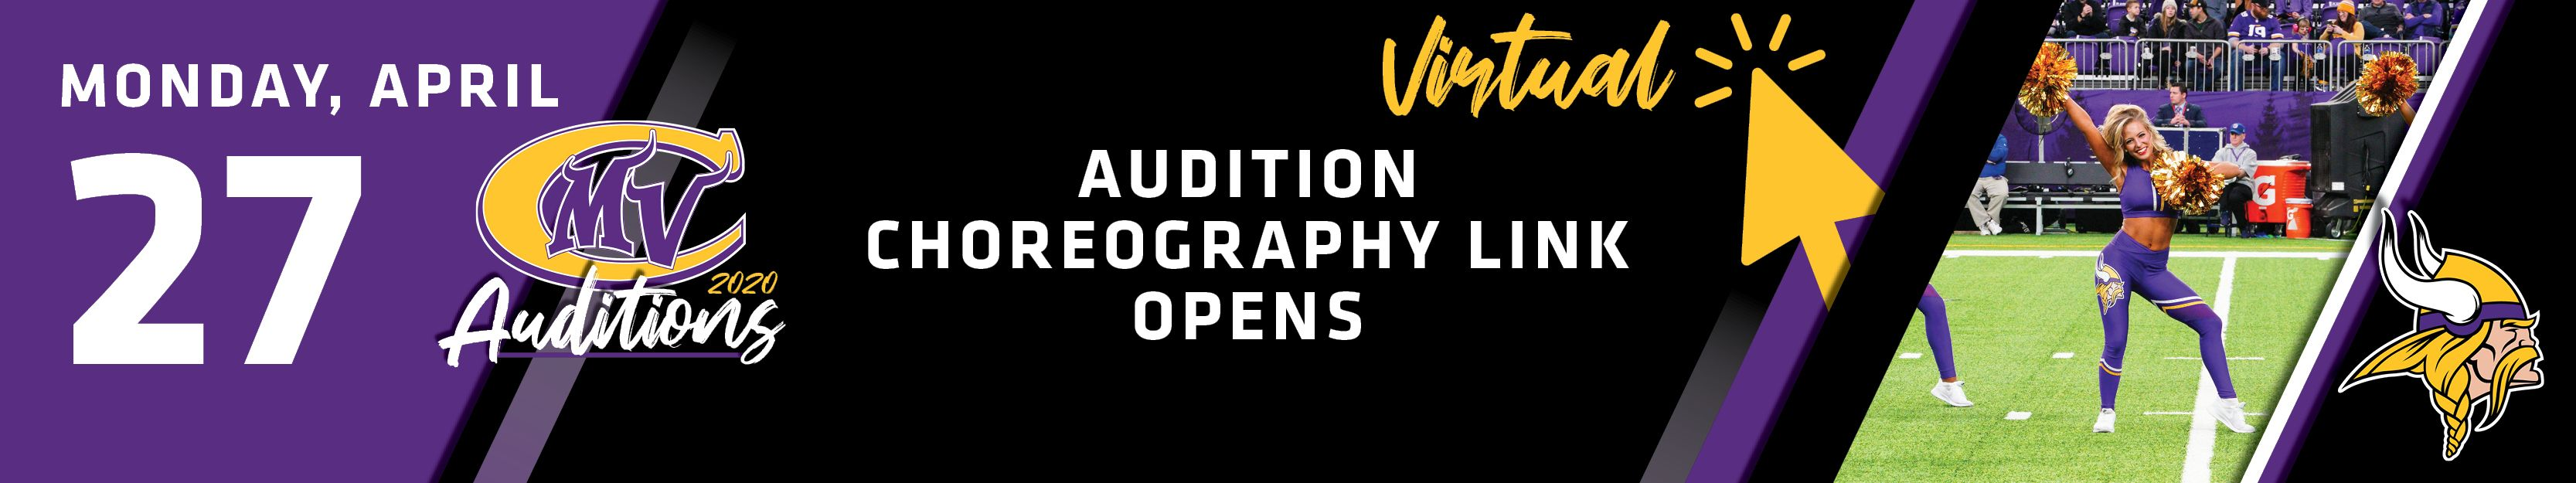 Monday, April 27th | Virtual Audition Choreography Link